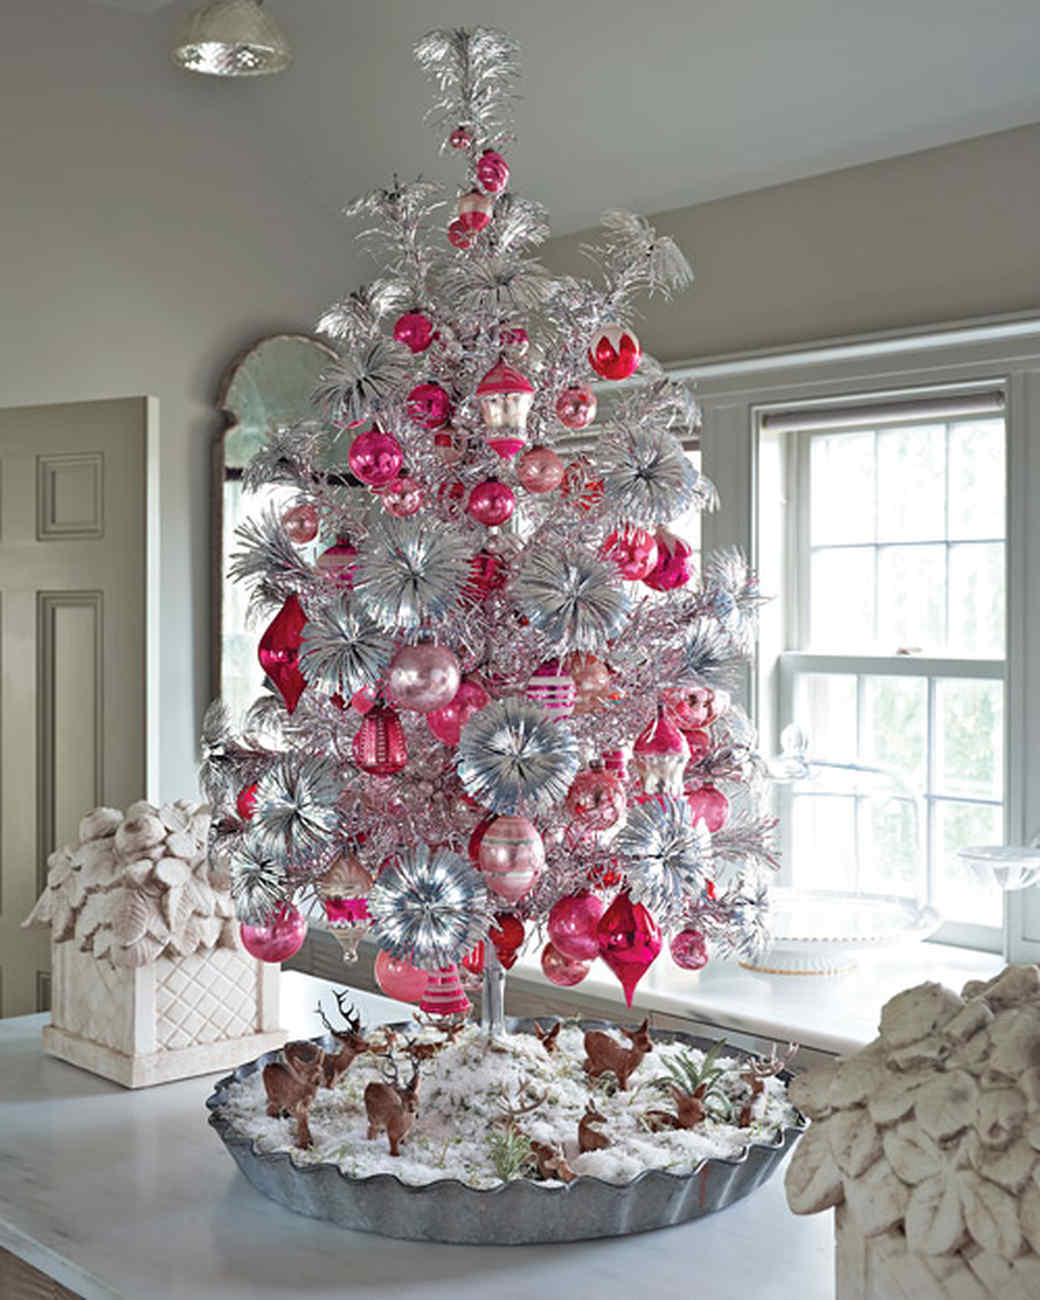 28 creative christmas tree decorating ideas martha stewart - Silver Christmas Tree Decorating Ideas